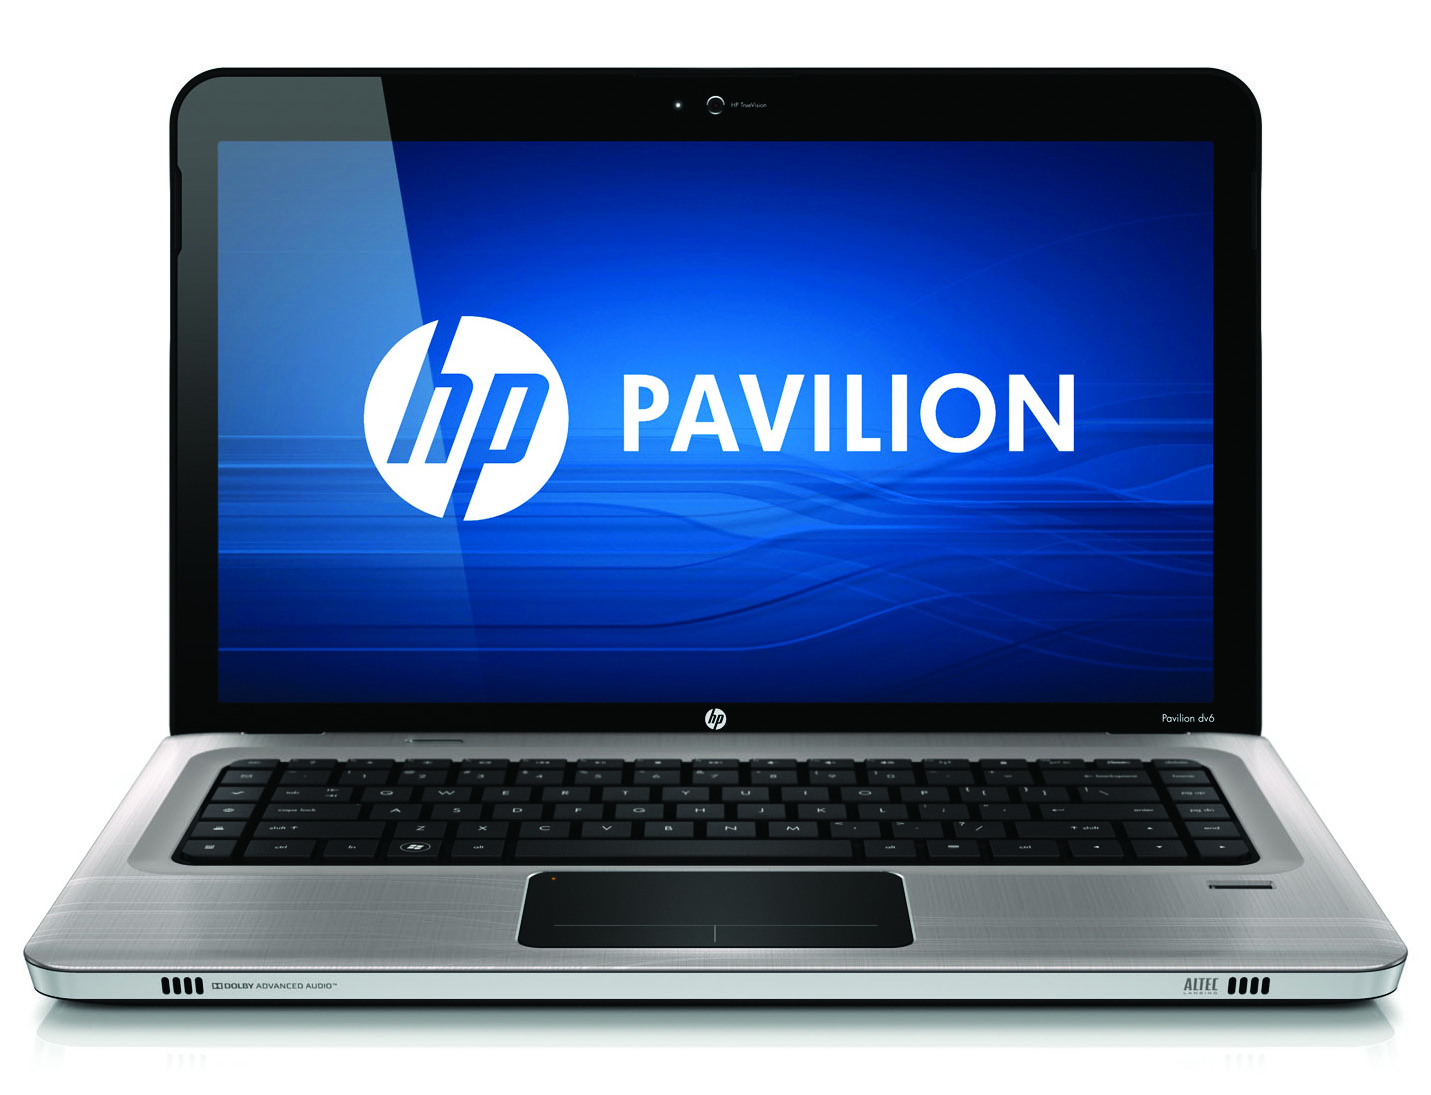 HP Pavilion Dv6: The First Touchscreen Pavilion Notebook